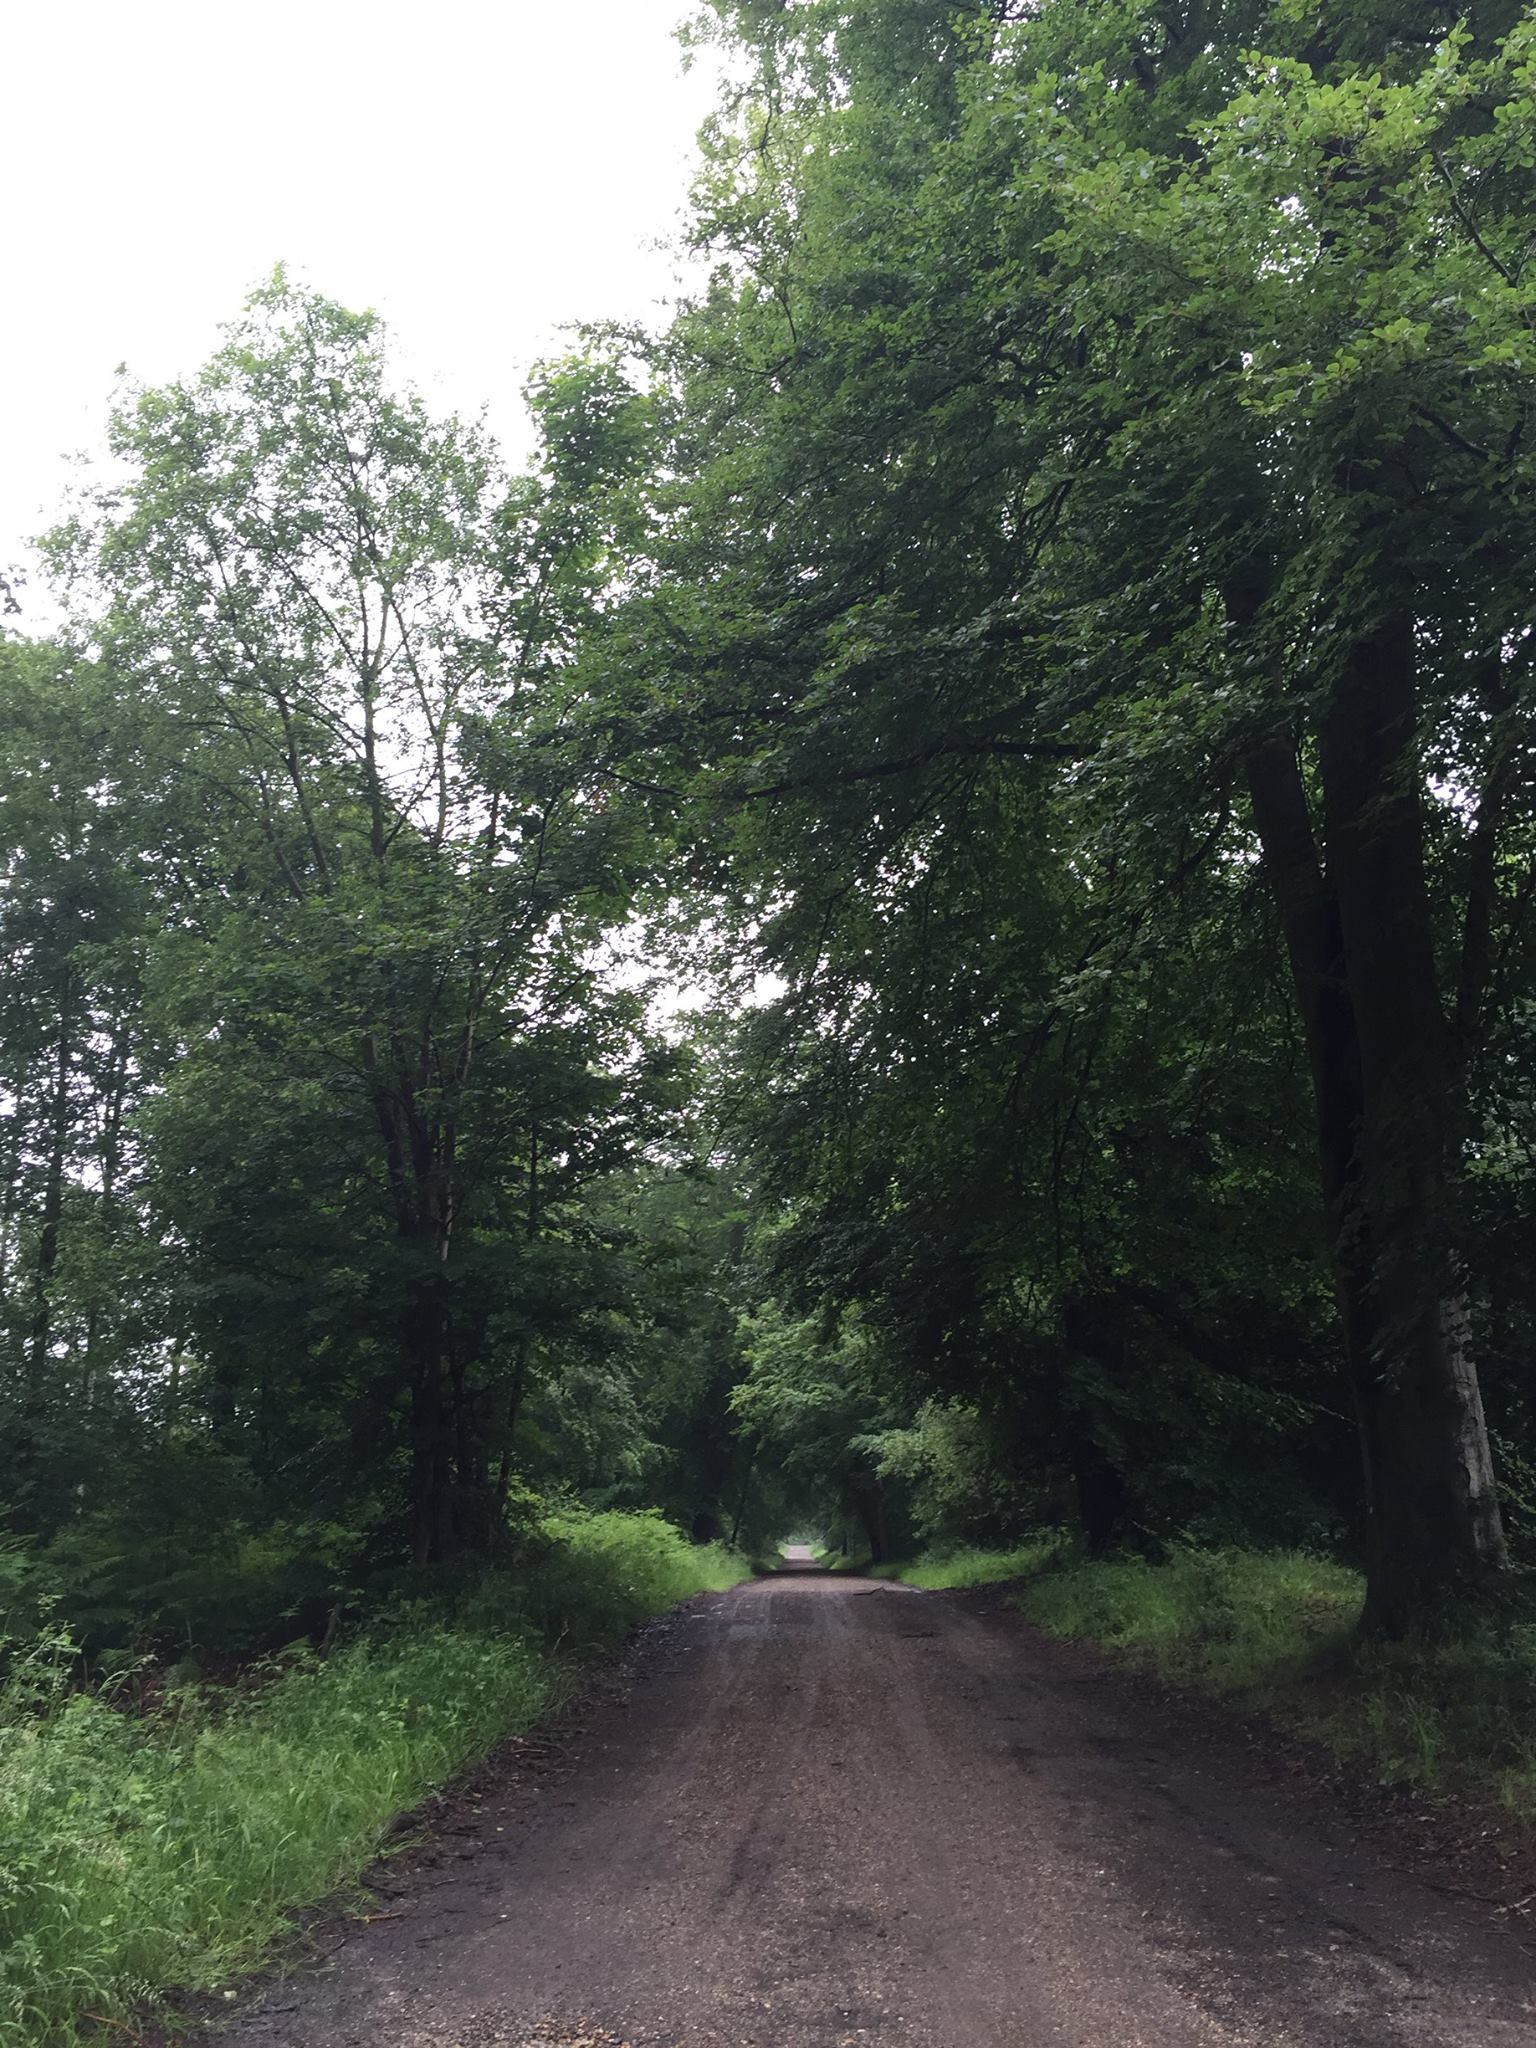 The race course through Savernake Forest